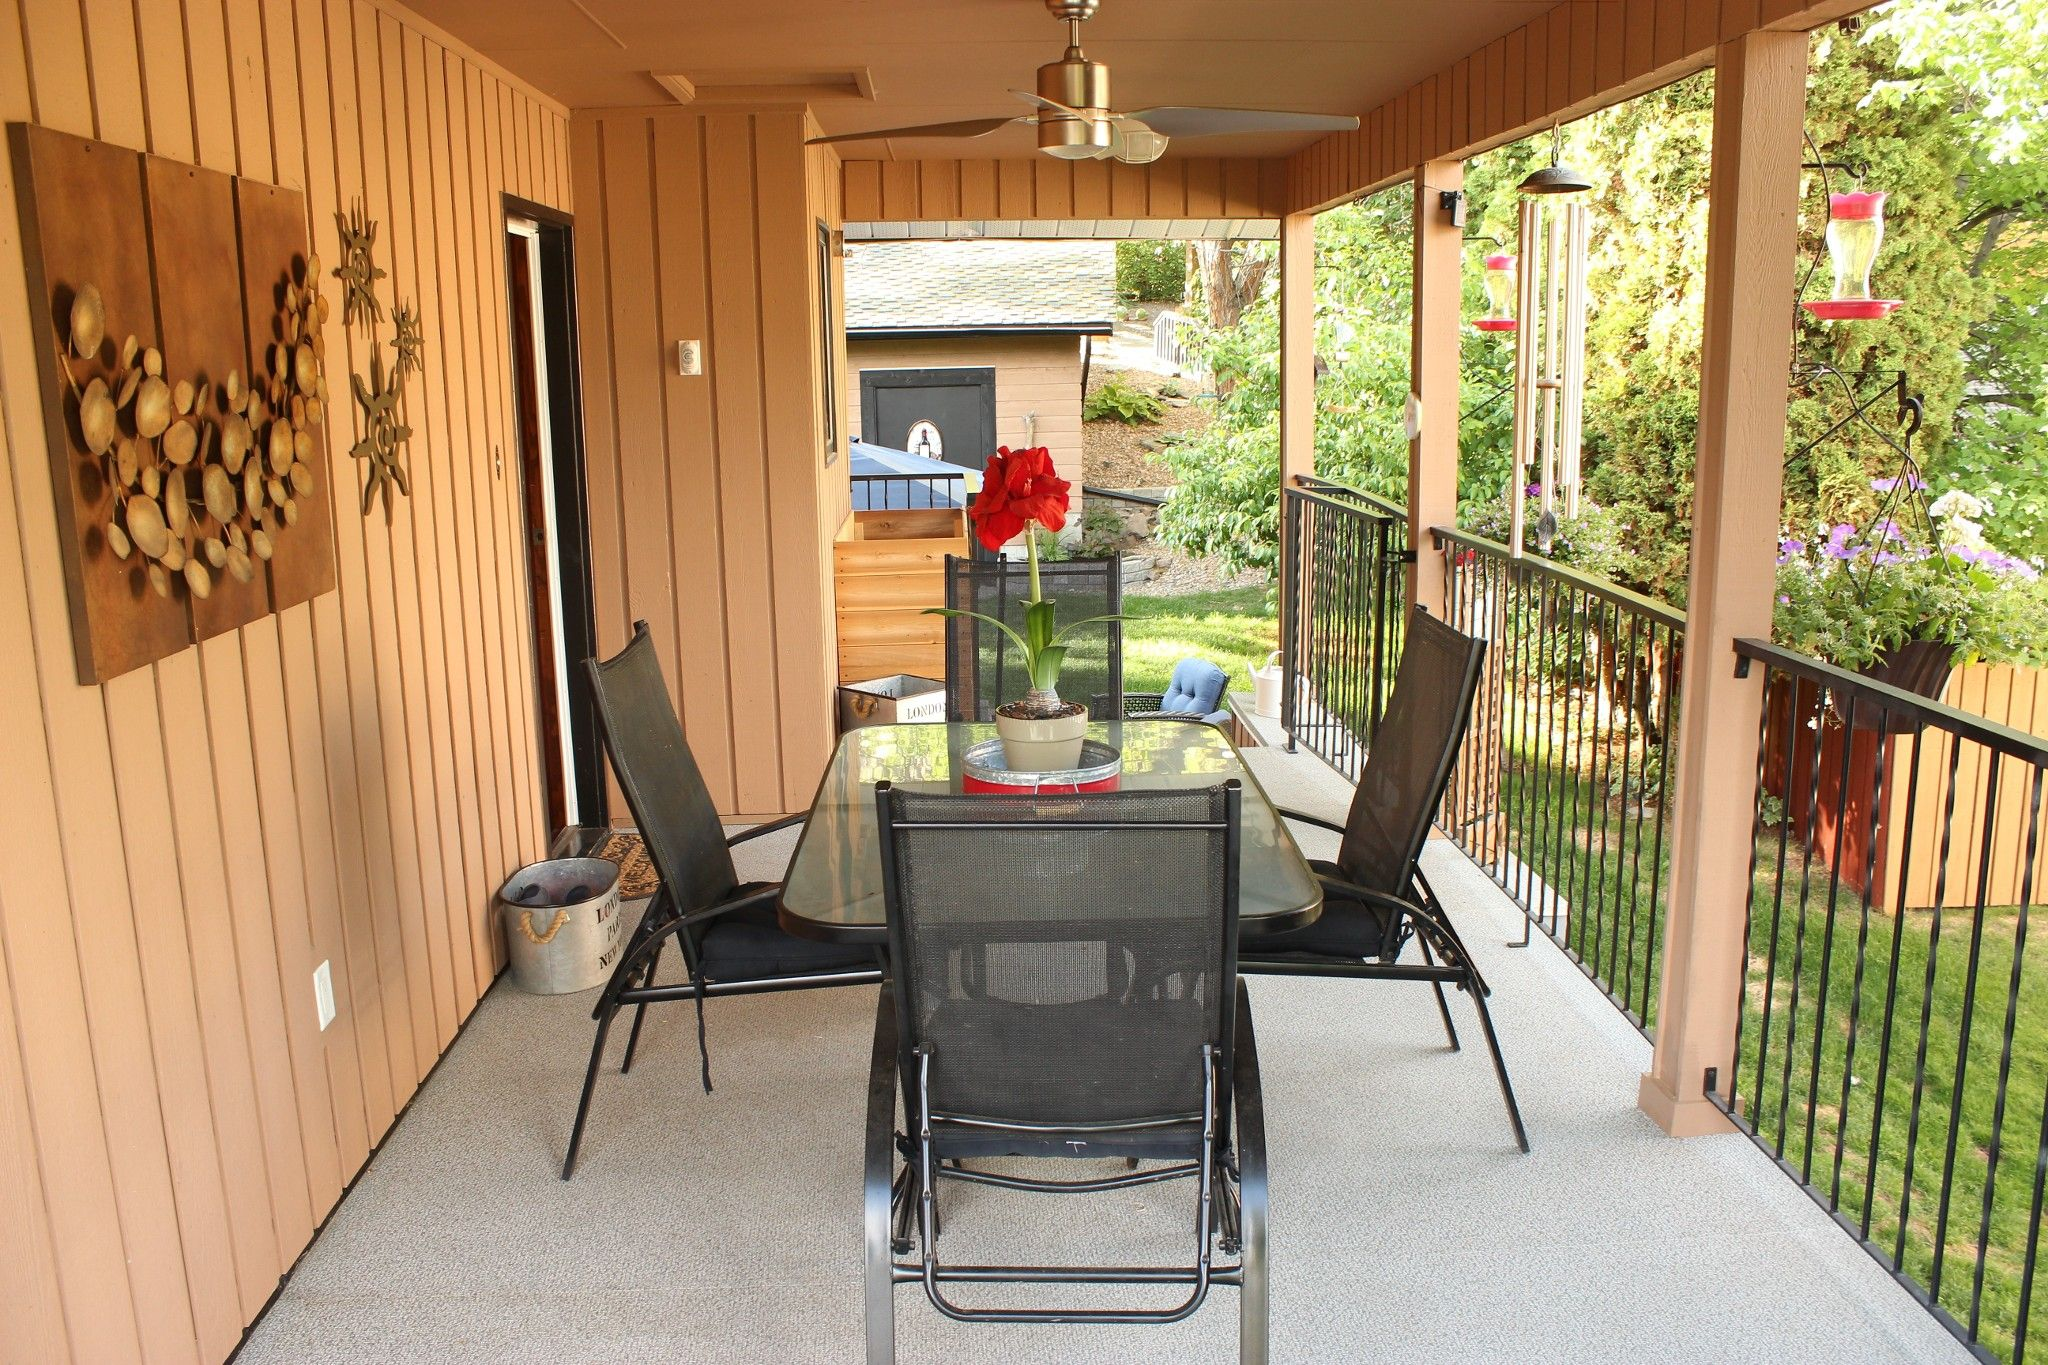 Photo 27: Photos: 3461 Navatanee Drive in Kamloops: South Thompson Valley House for sale : MLS®# 150033